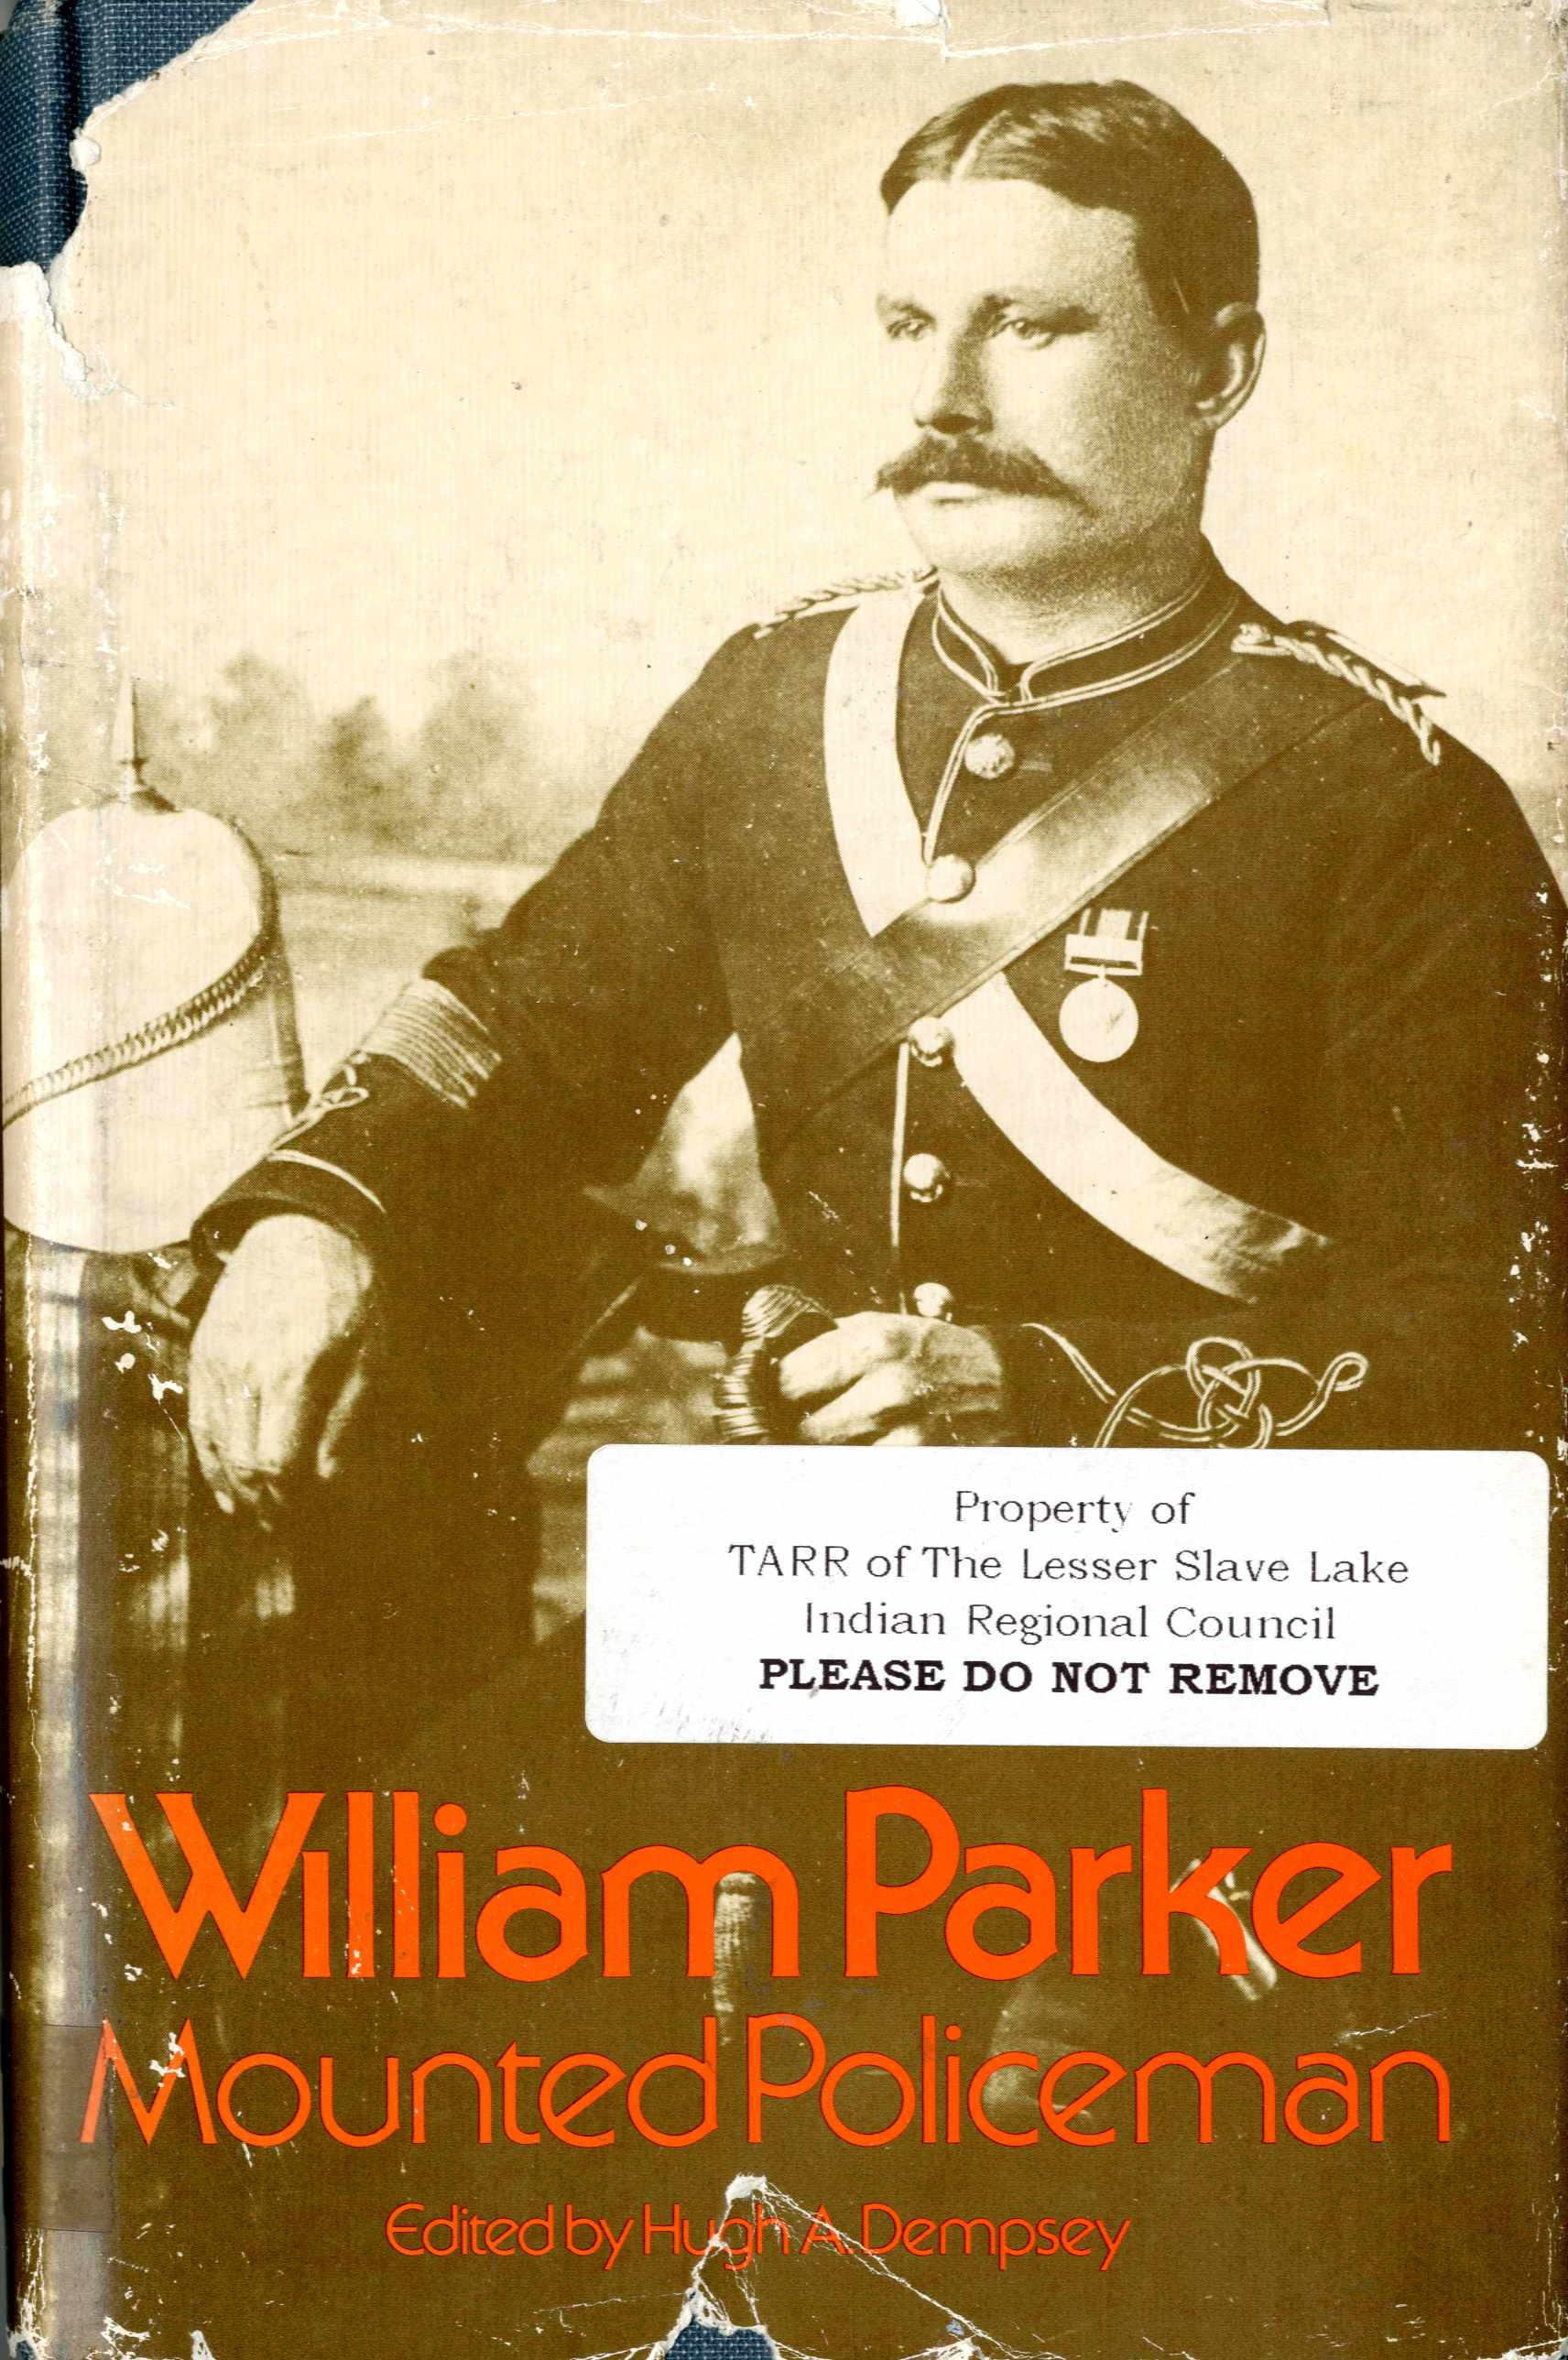 William Parker, Mounted Policeman Image